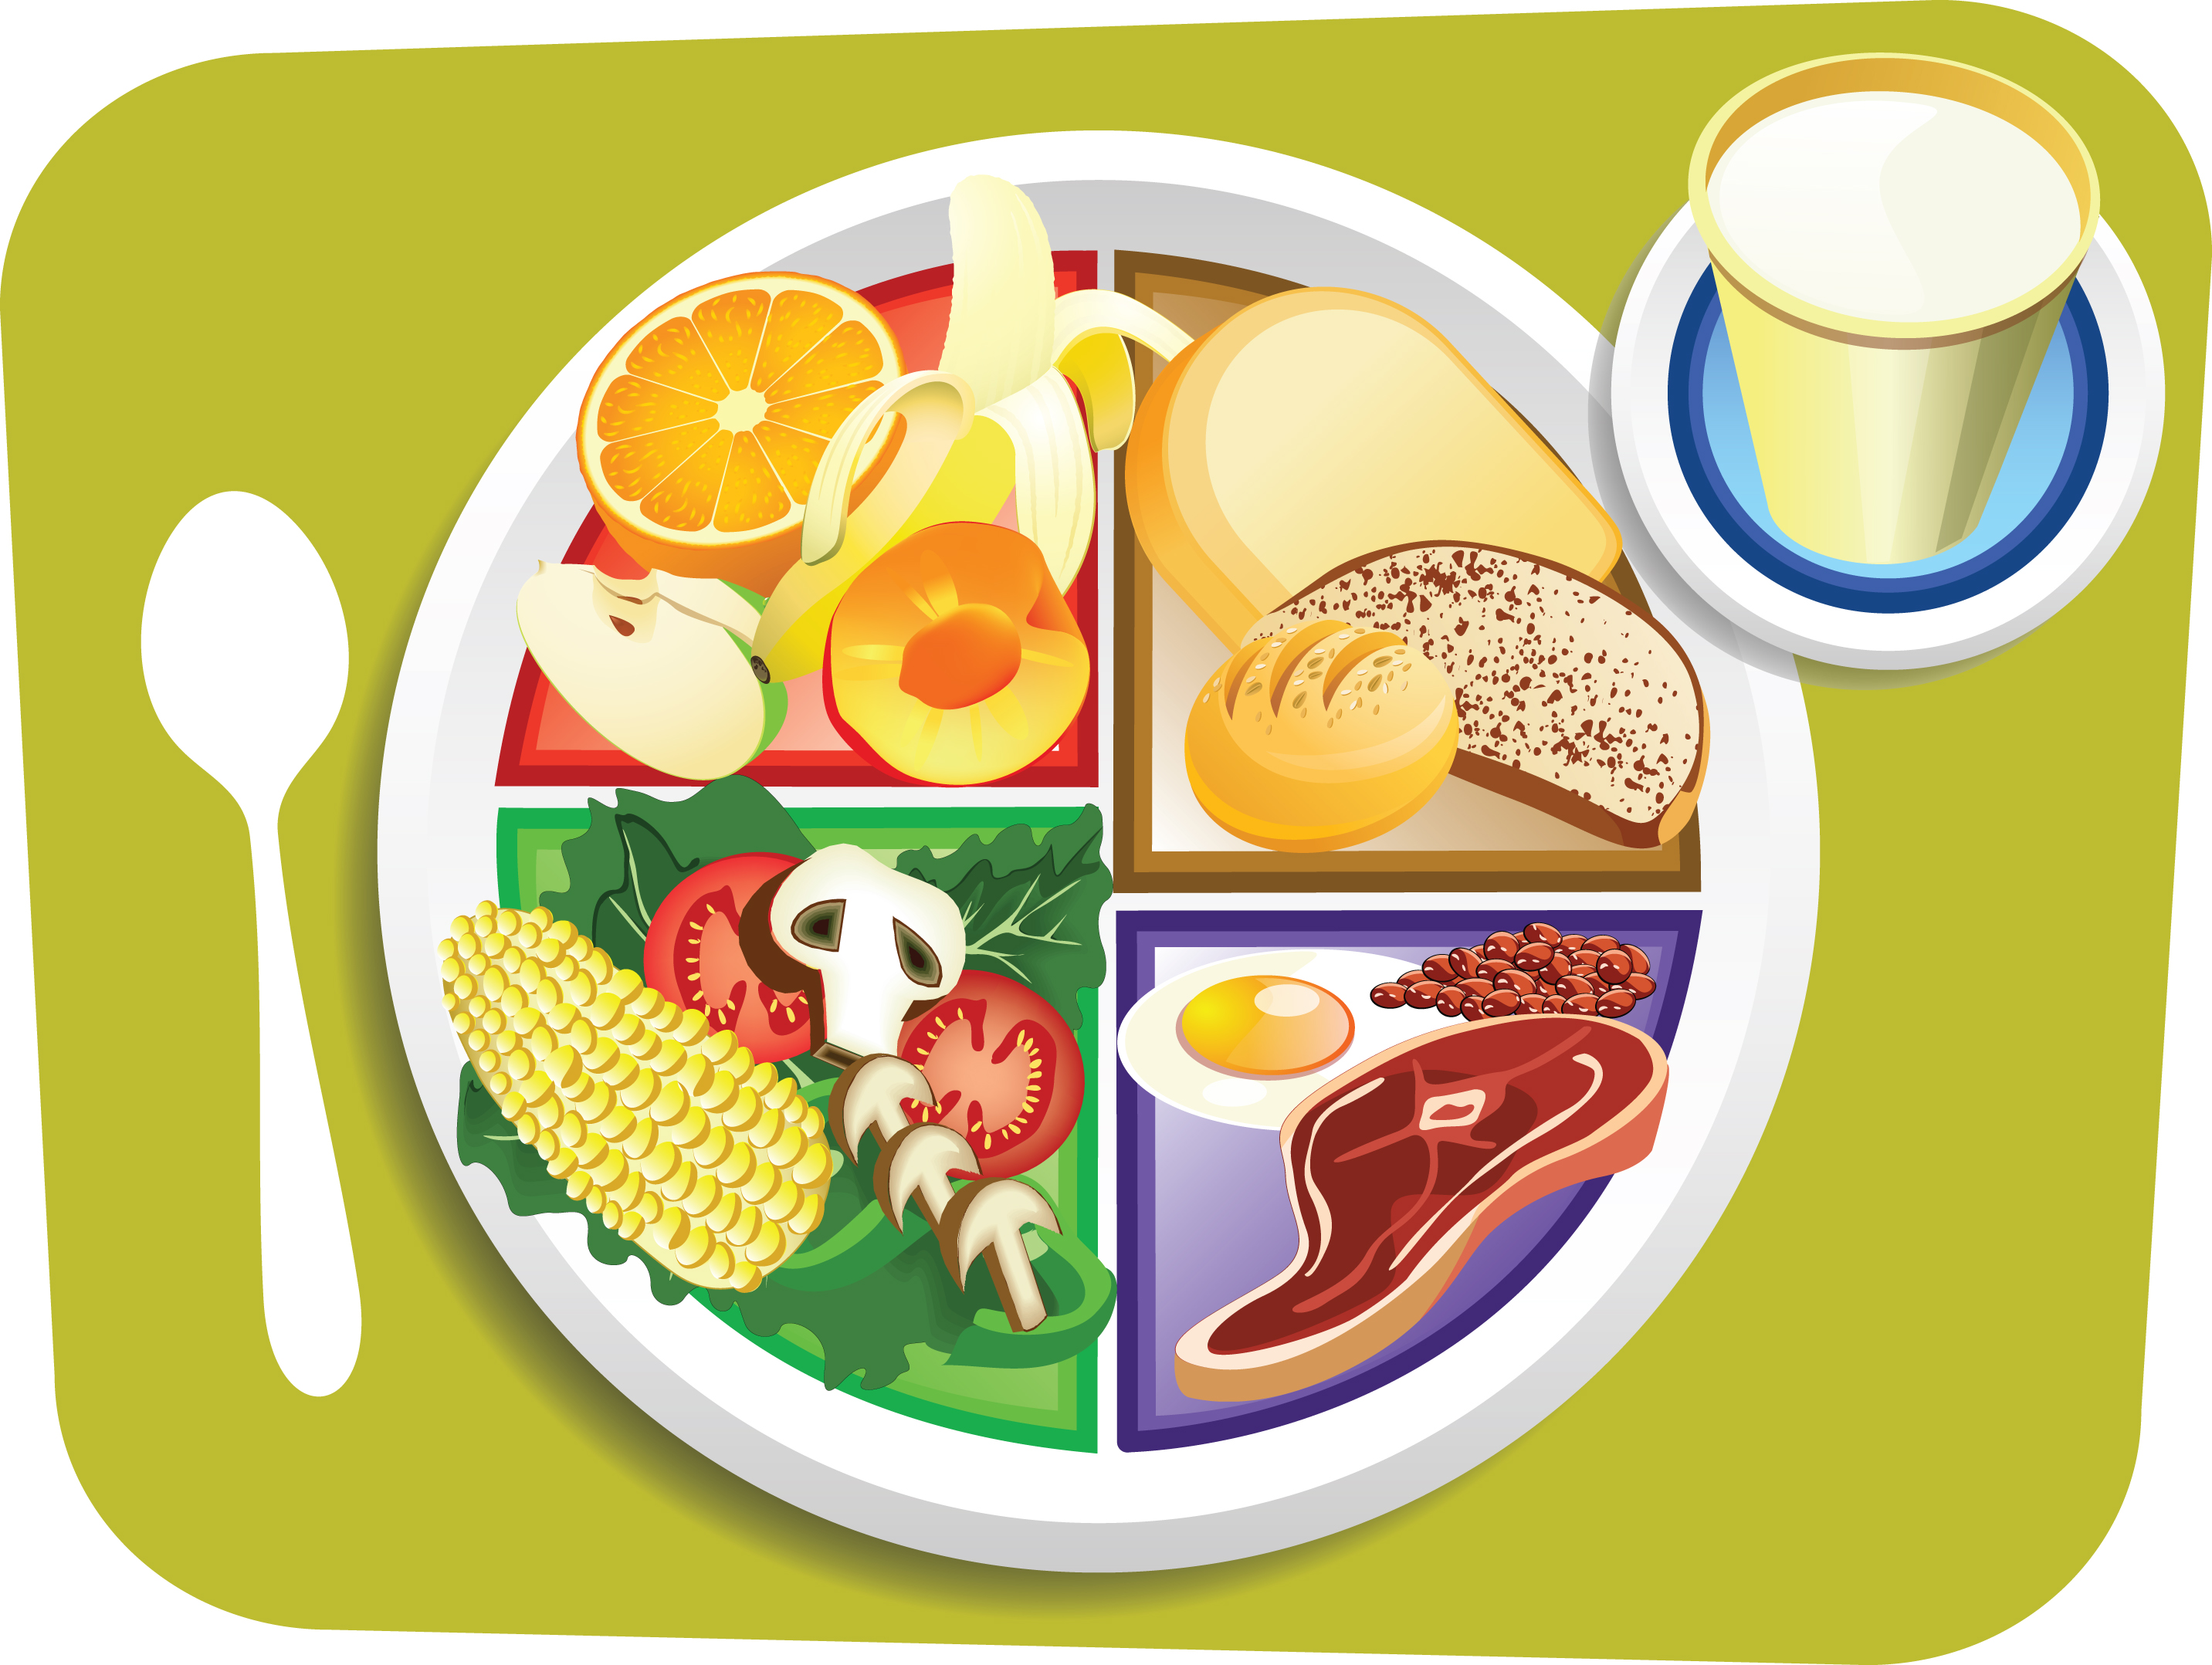 W Myplate Plate together with Myplate Diet Plan X together with  moreover Db A B O in addition . on myplate graphic